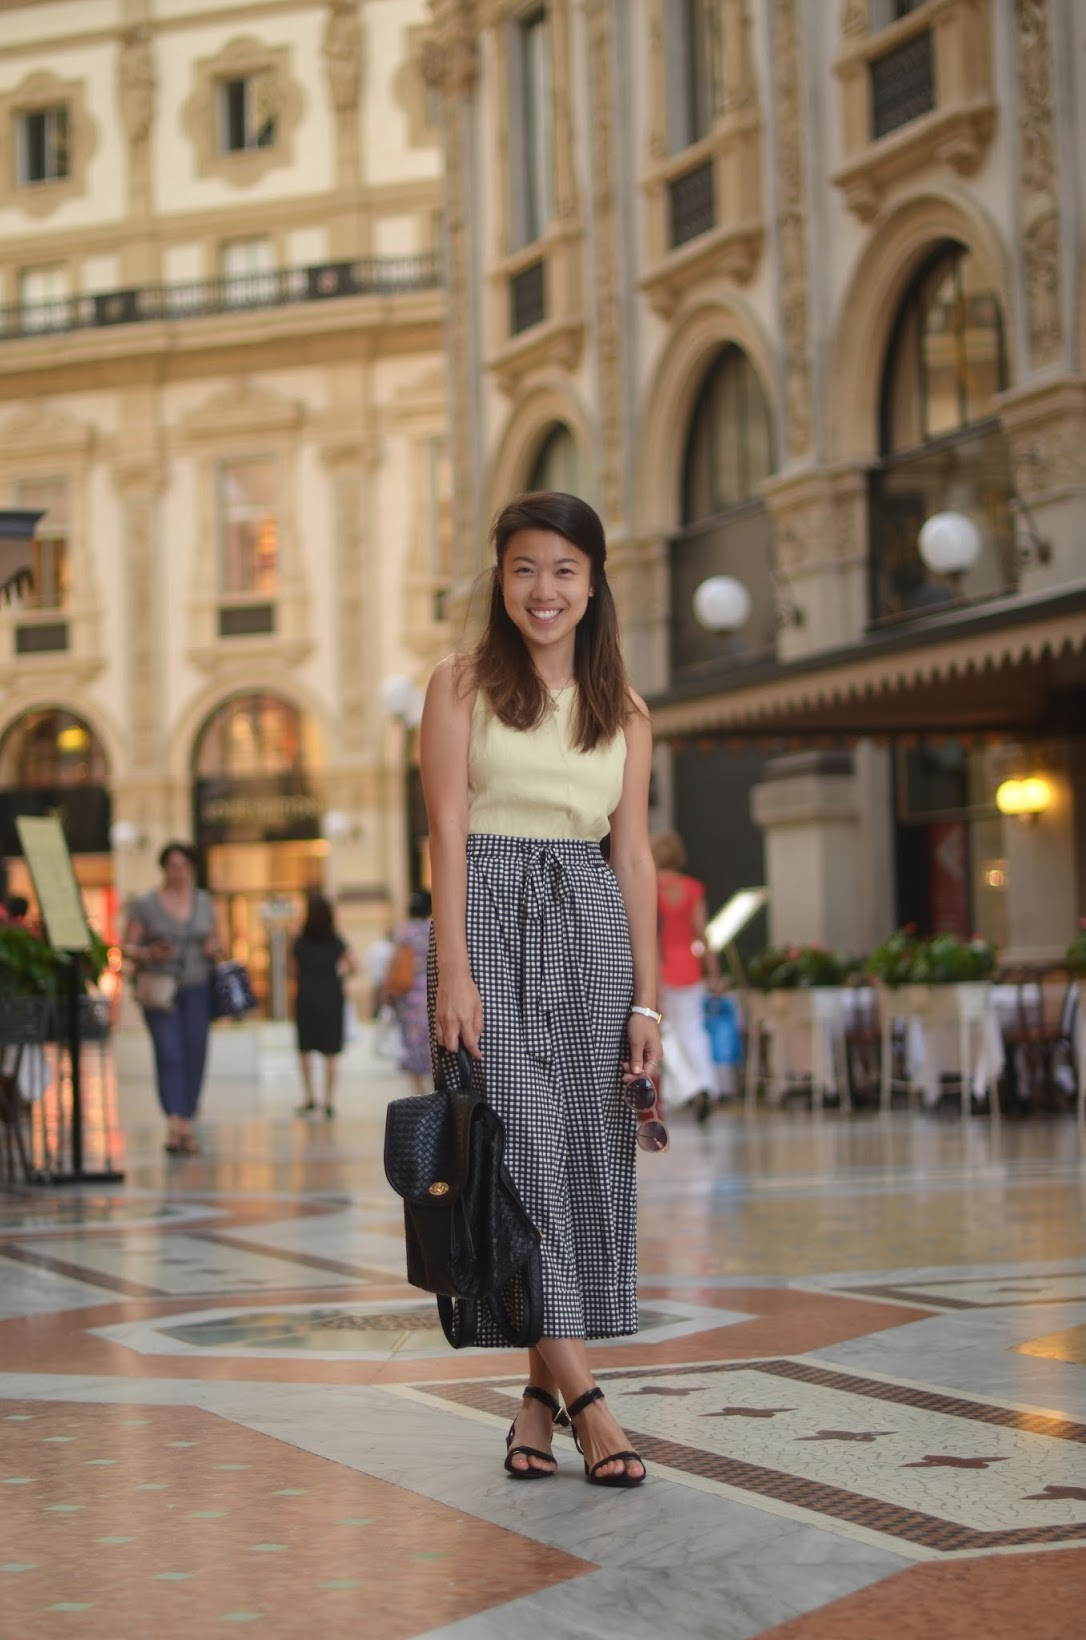 gingham culottes with yellow top, black sandals and mini backpack outfit in milan